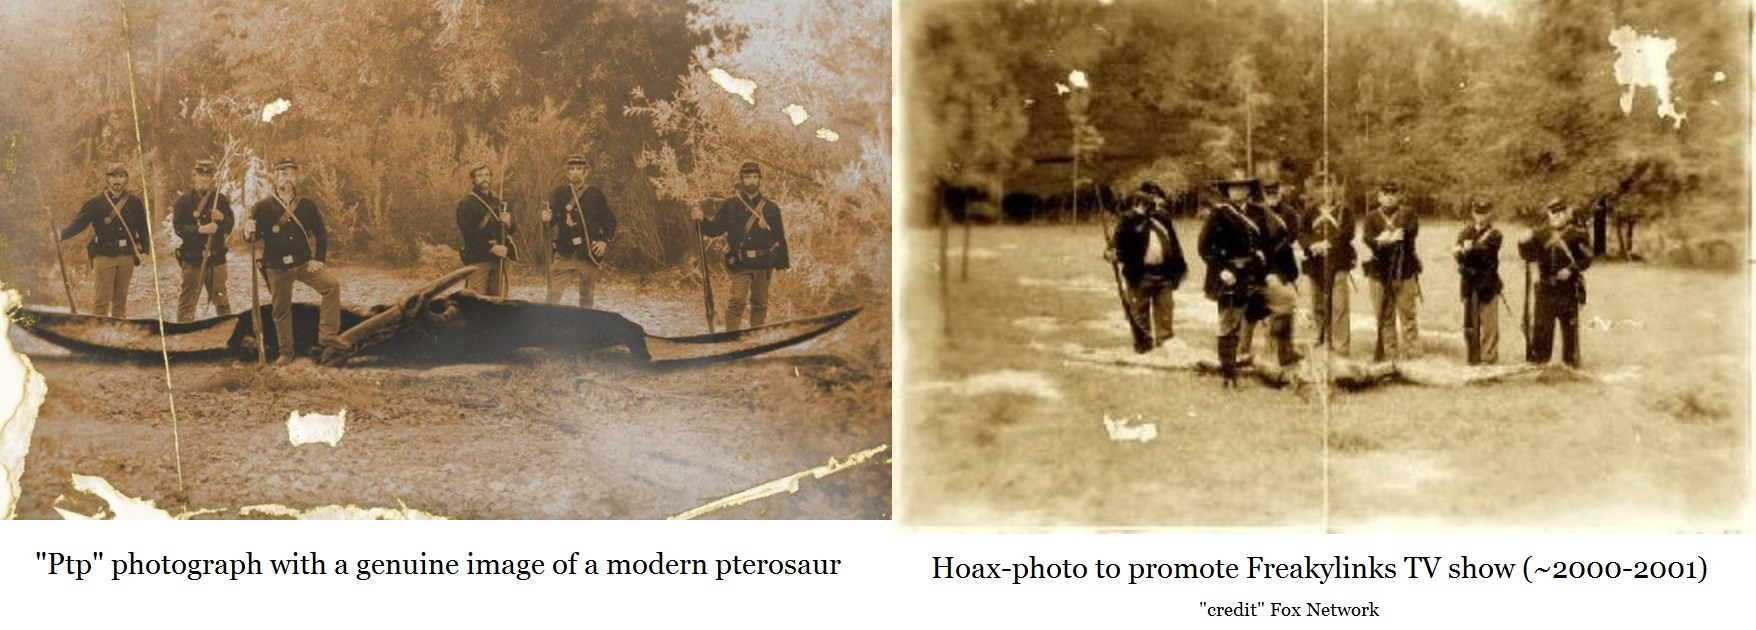 comparing two photographs